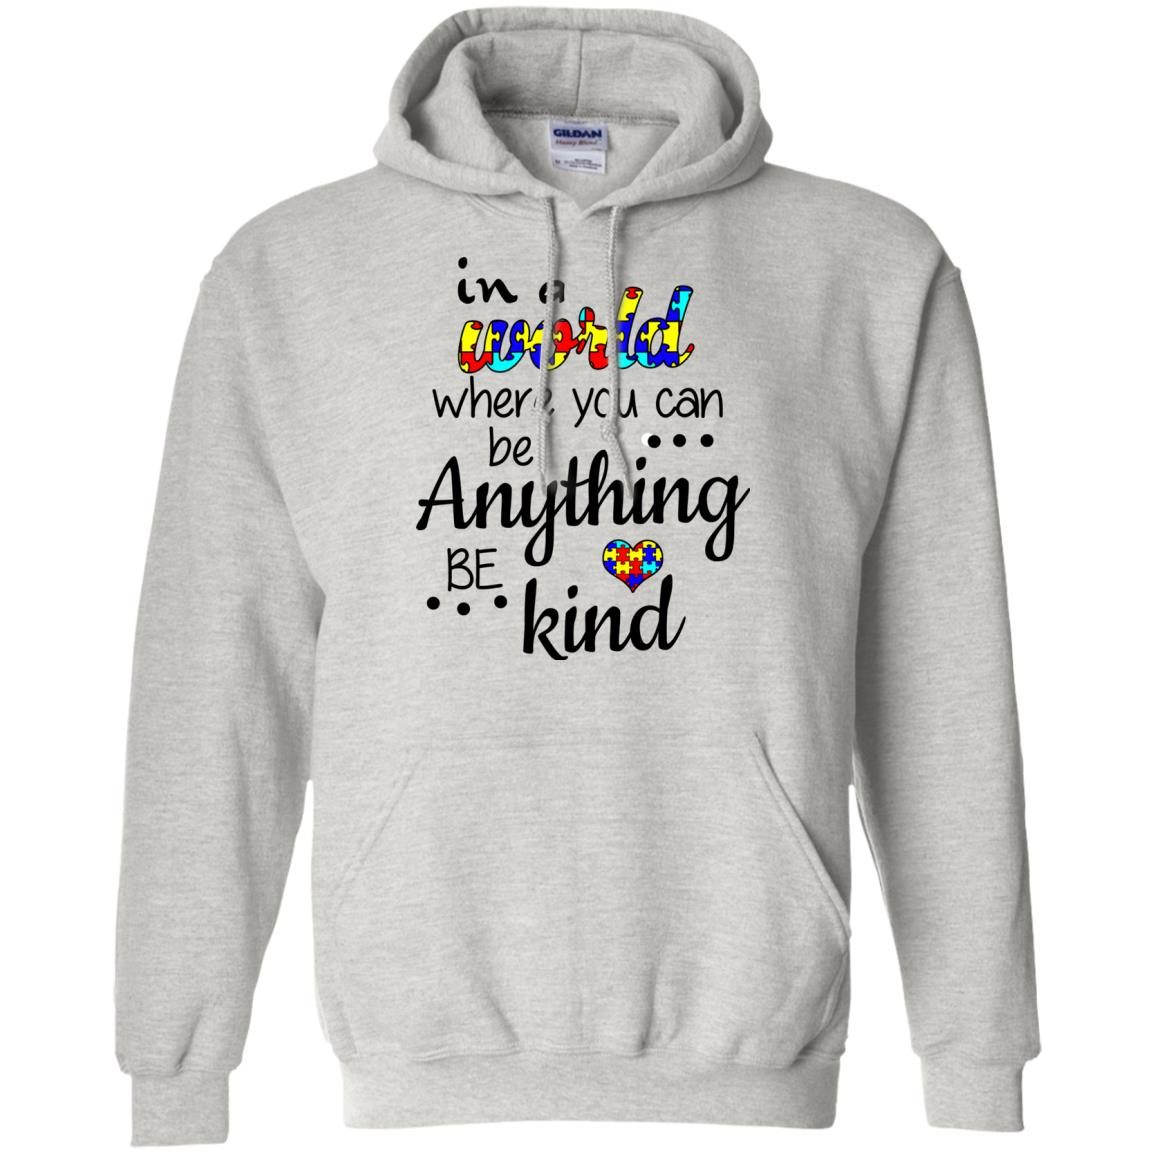 image 668 - Autism: In a World Where You Can Be Anything Be Kind Shirt